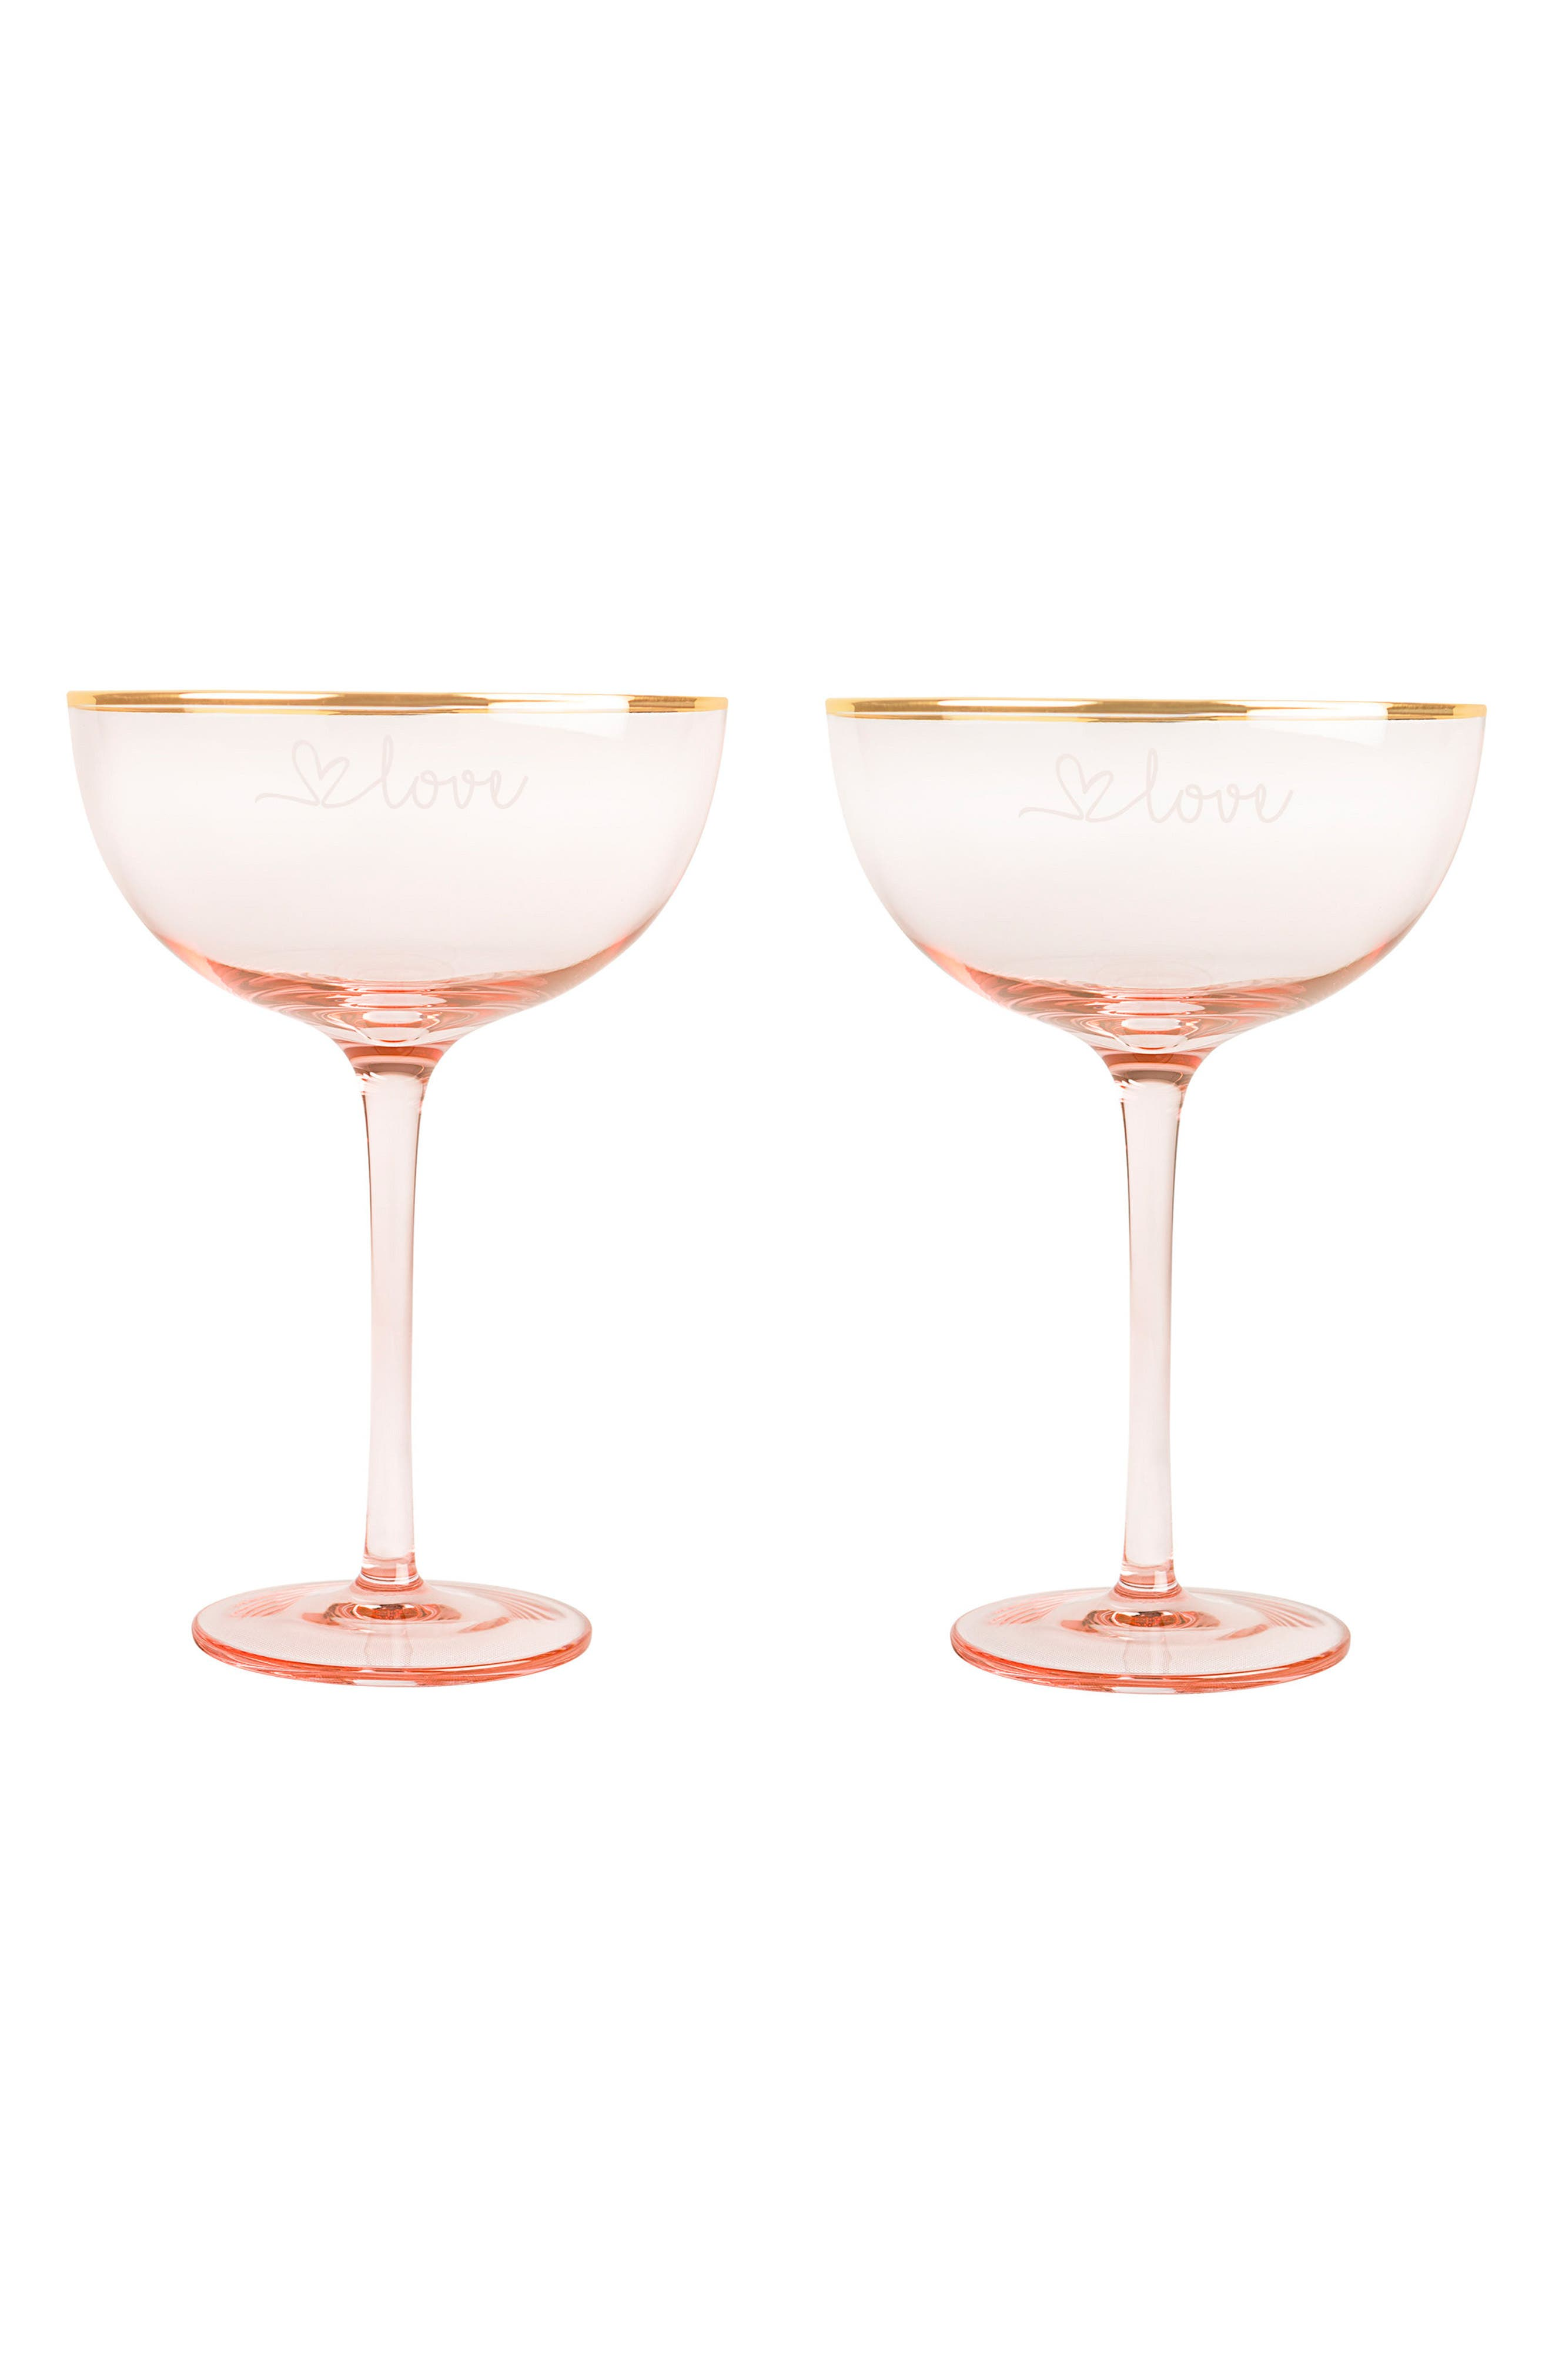 Cathy's Concepts Love Set of 2 Champagne Coupes